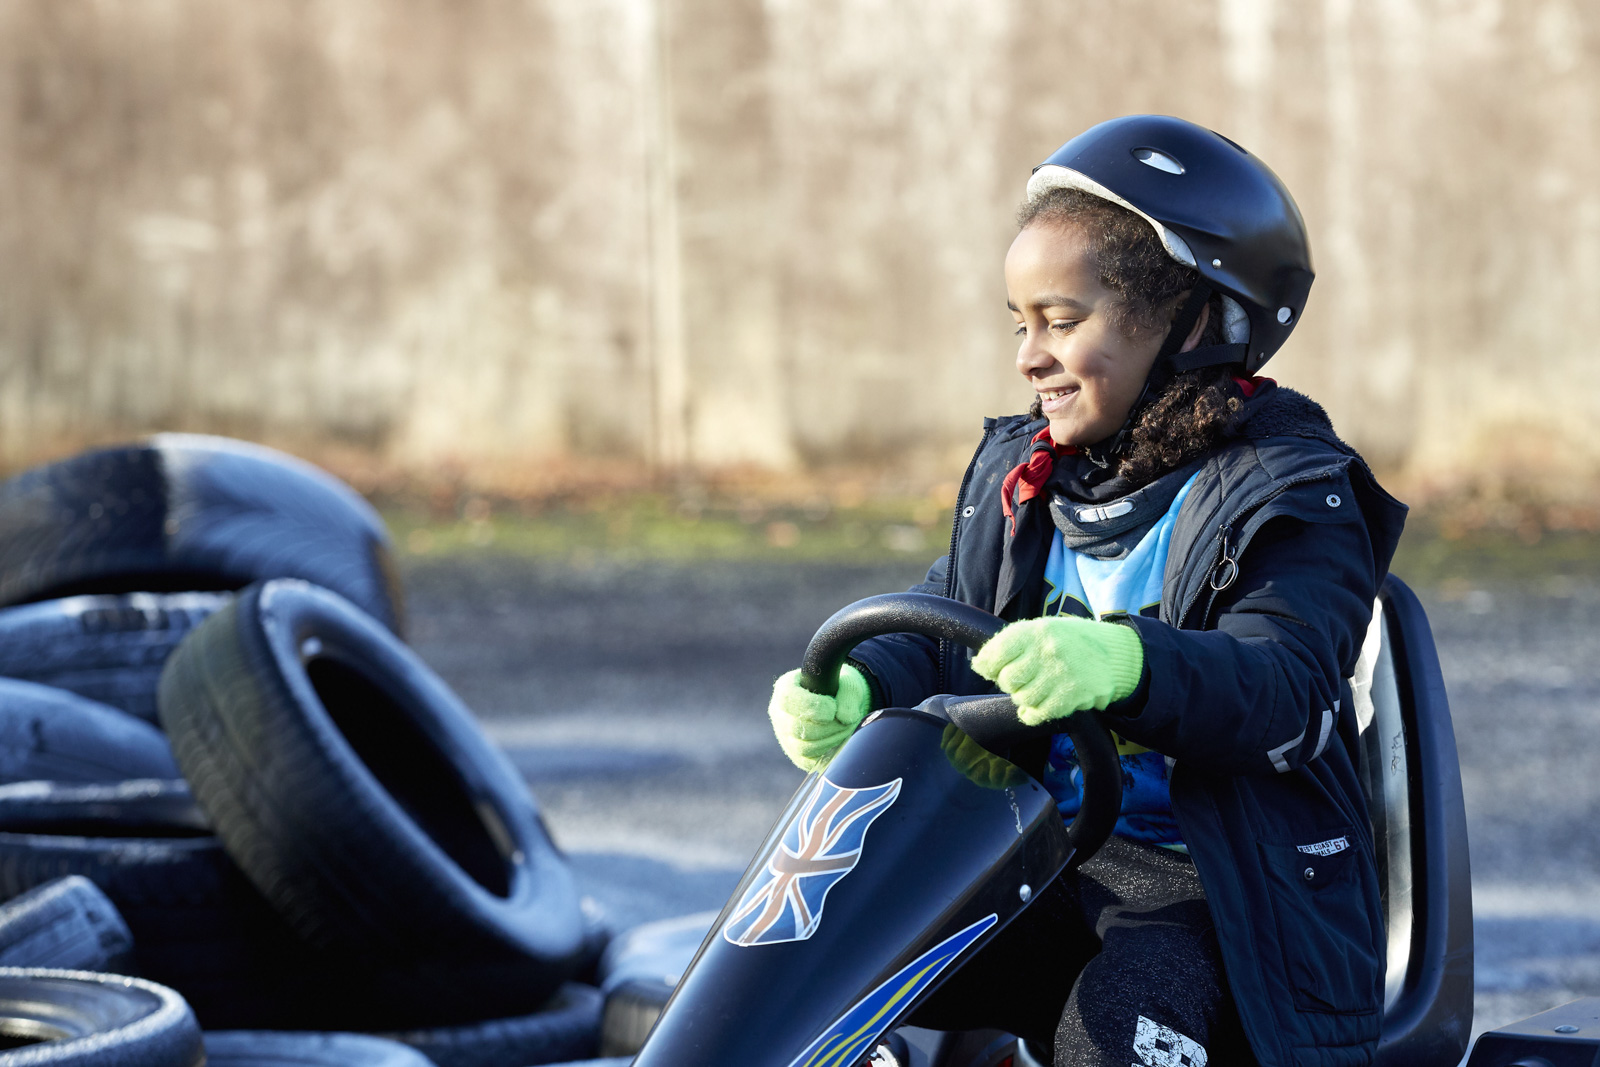 SCOUTS_WOODHOUSE_PARK_GO_KARTS_006.jpg